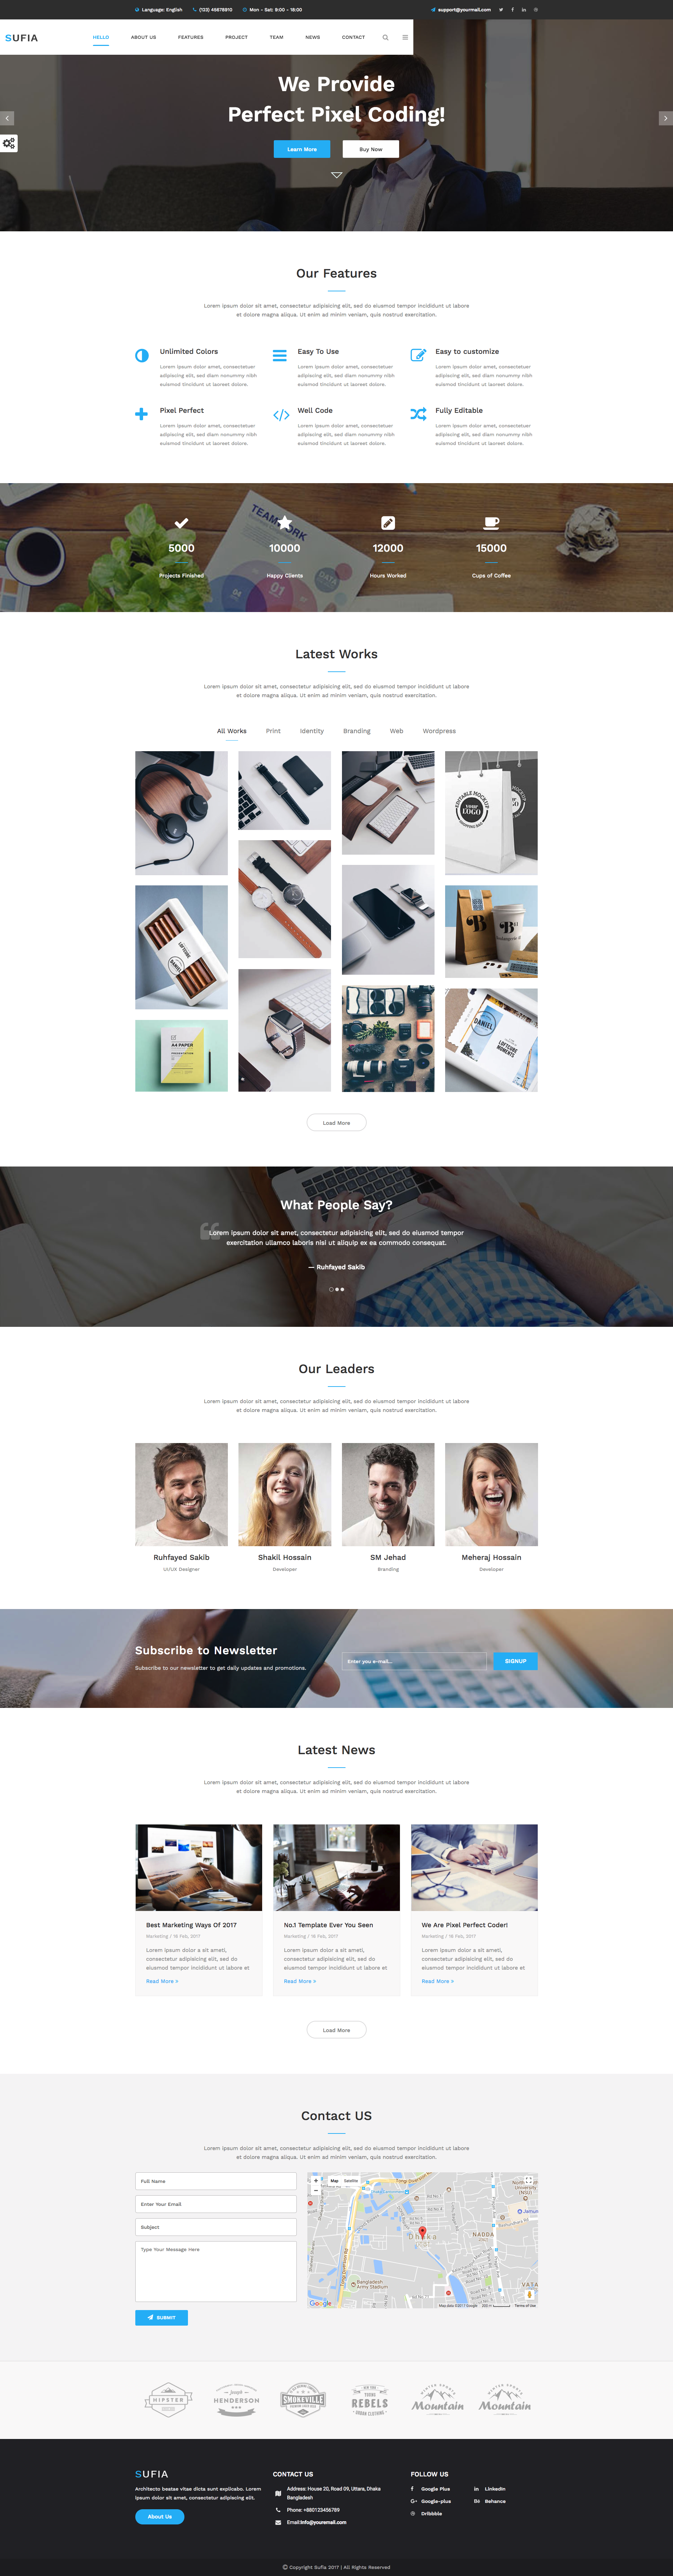 Sufia - Responsive Multipurpose HTML5 Template. This is a ...